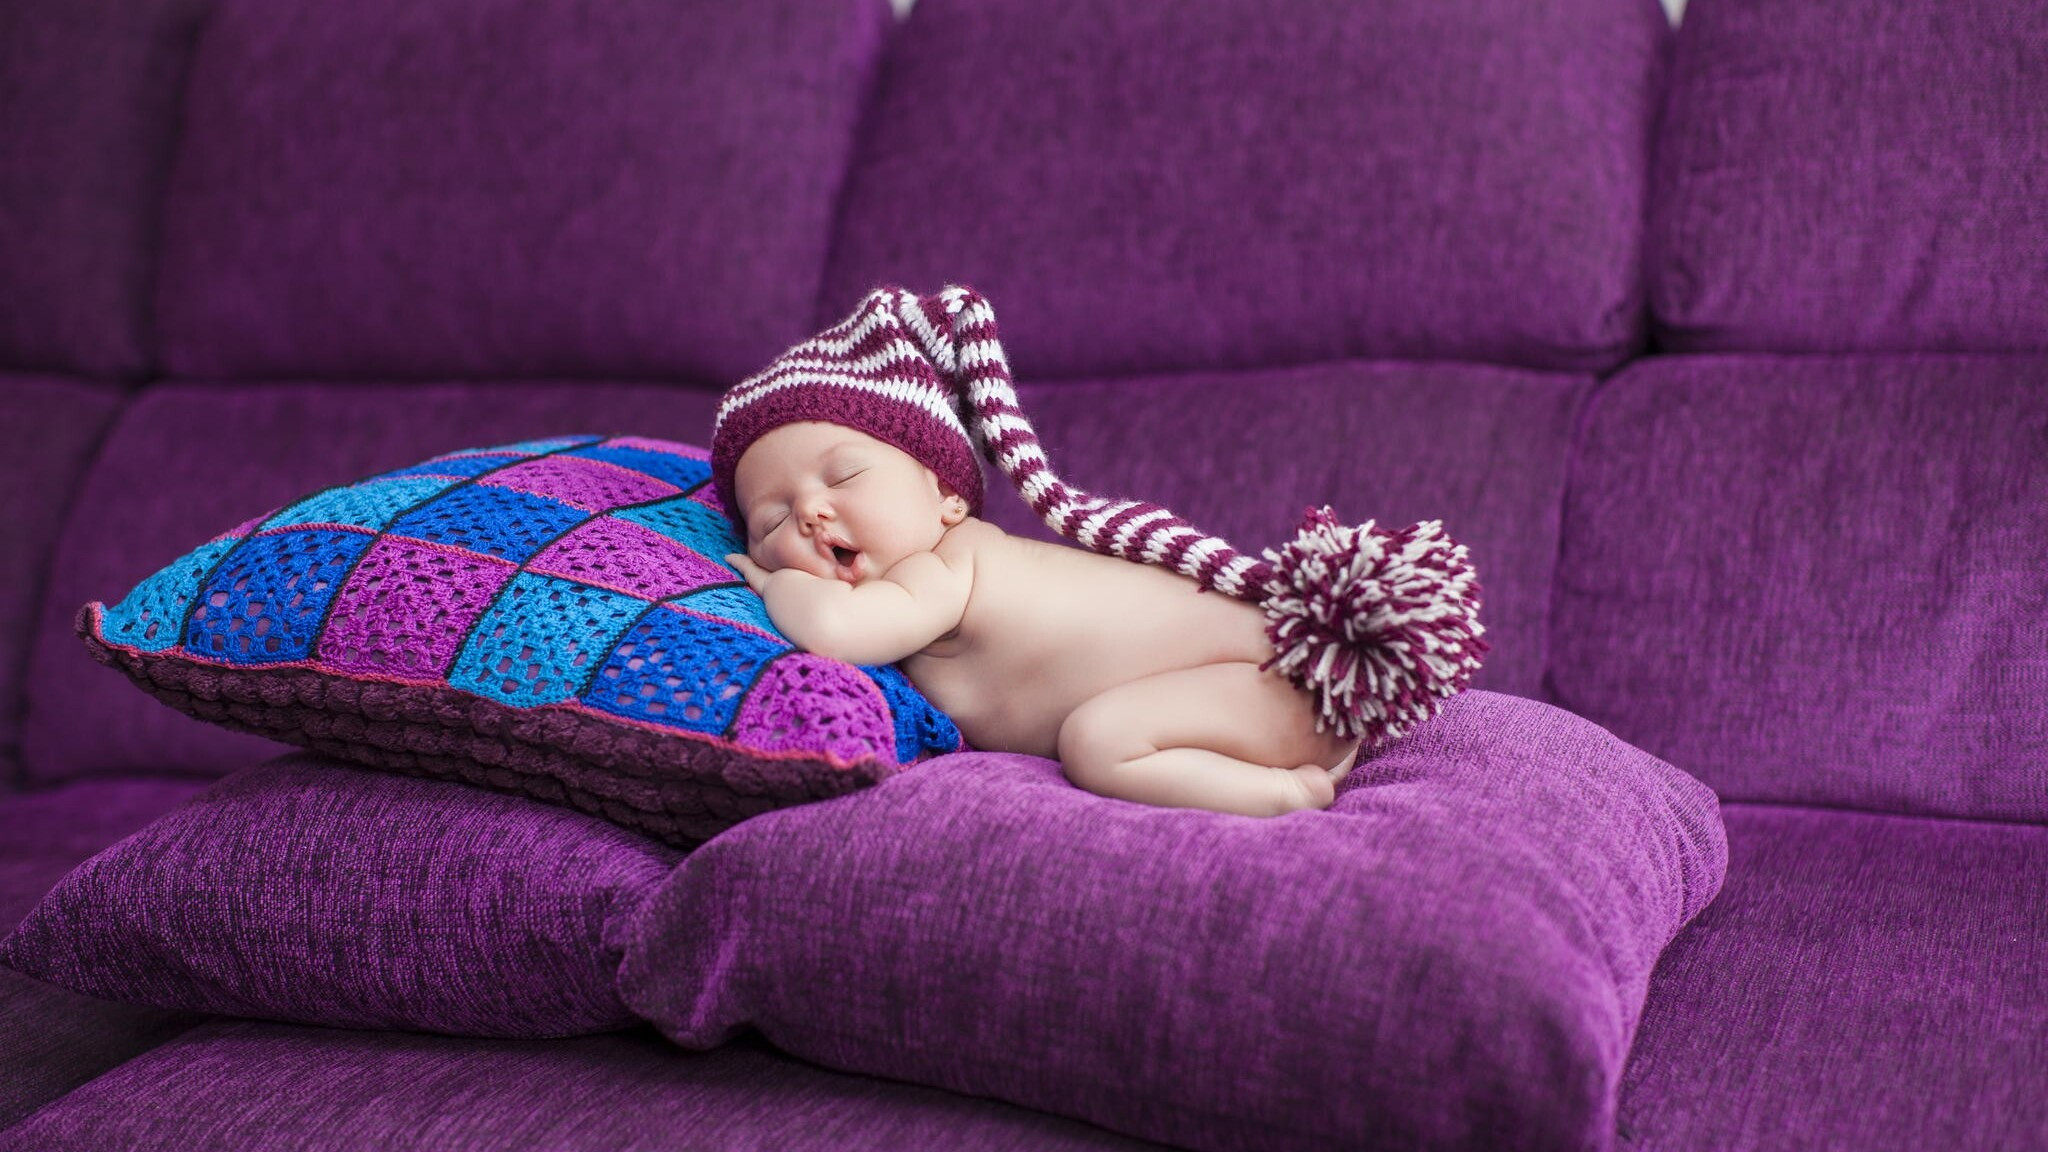 2048x1152 cute sleeping baby 2048x1152 resolution hd 4k wallpapers